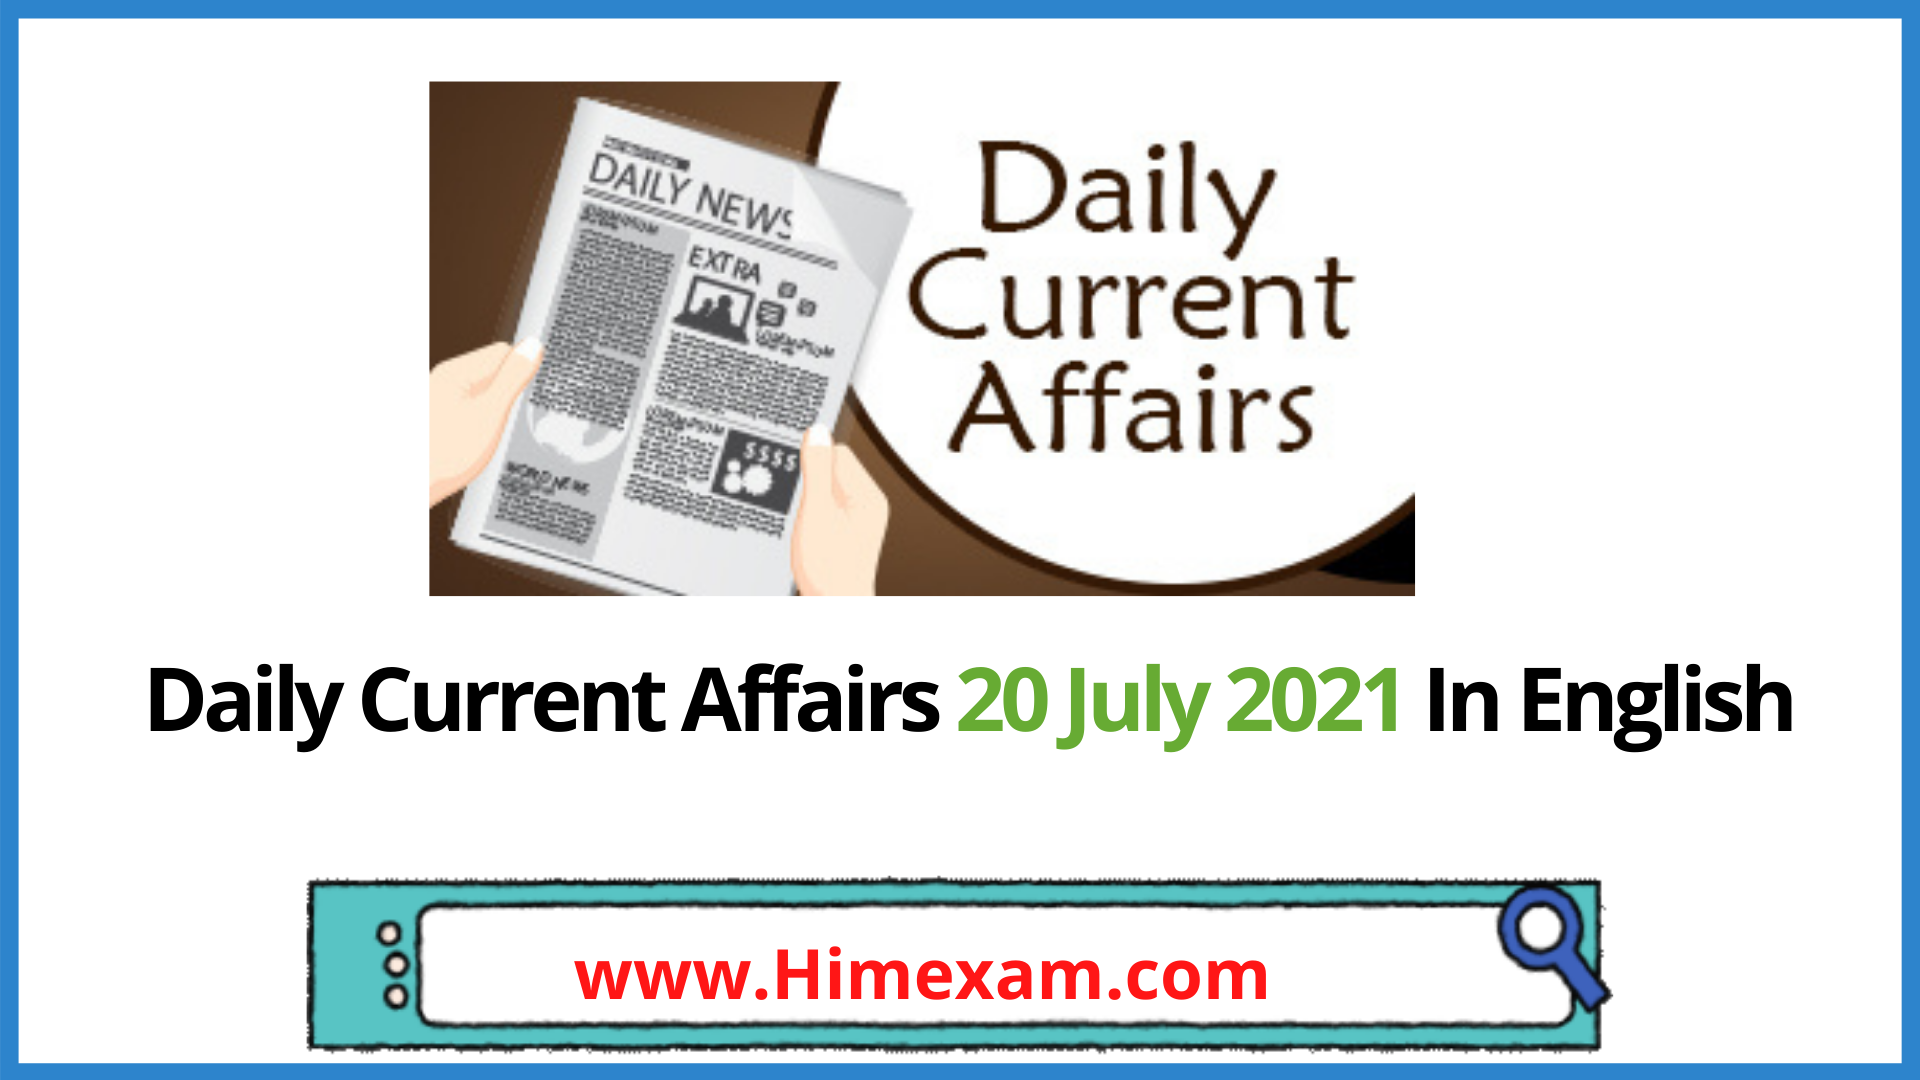 Daily Current Affairs 20 July 2021 In English